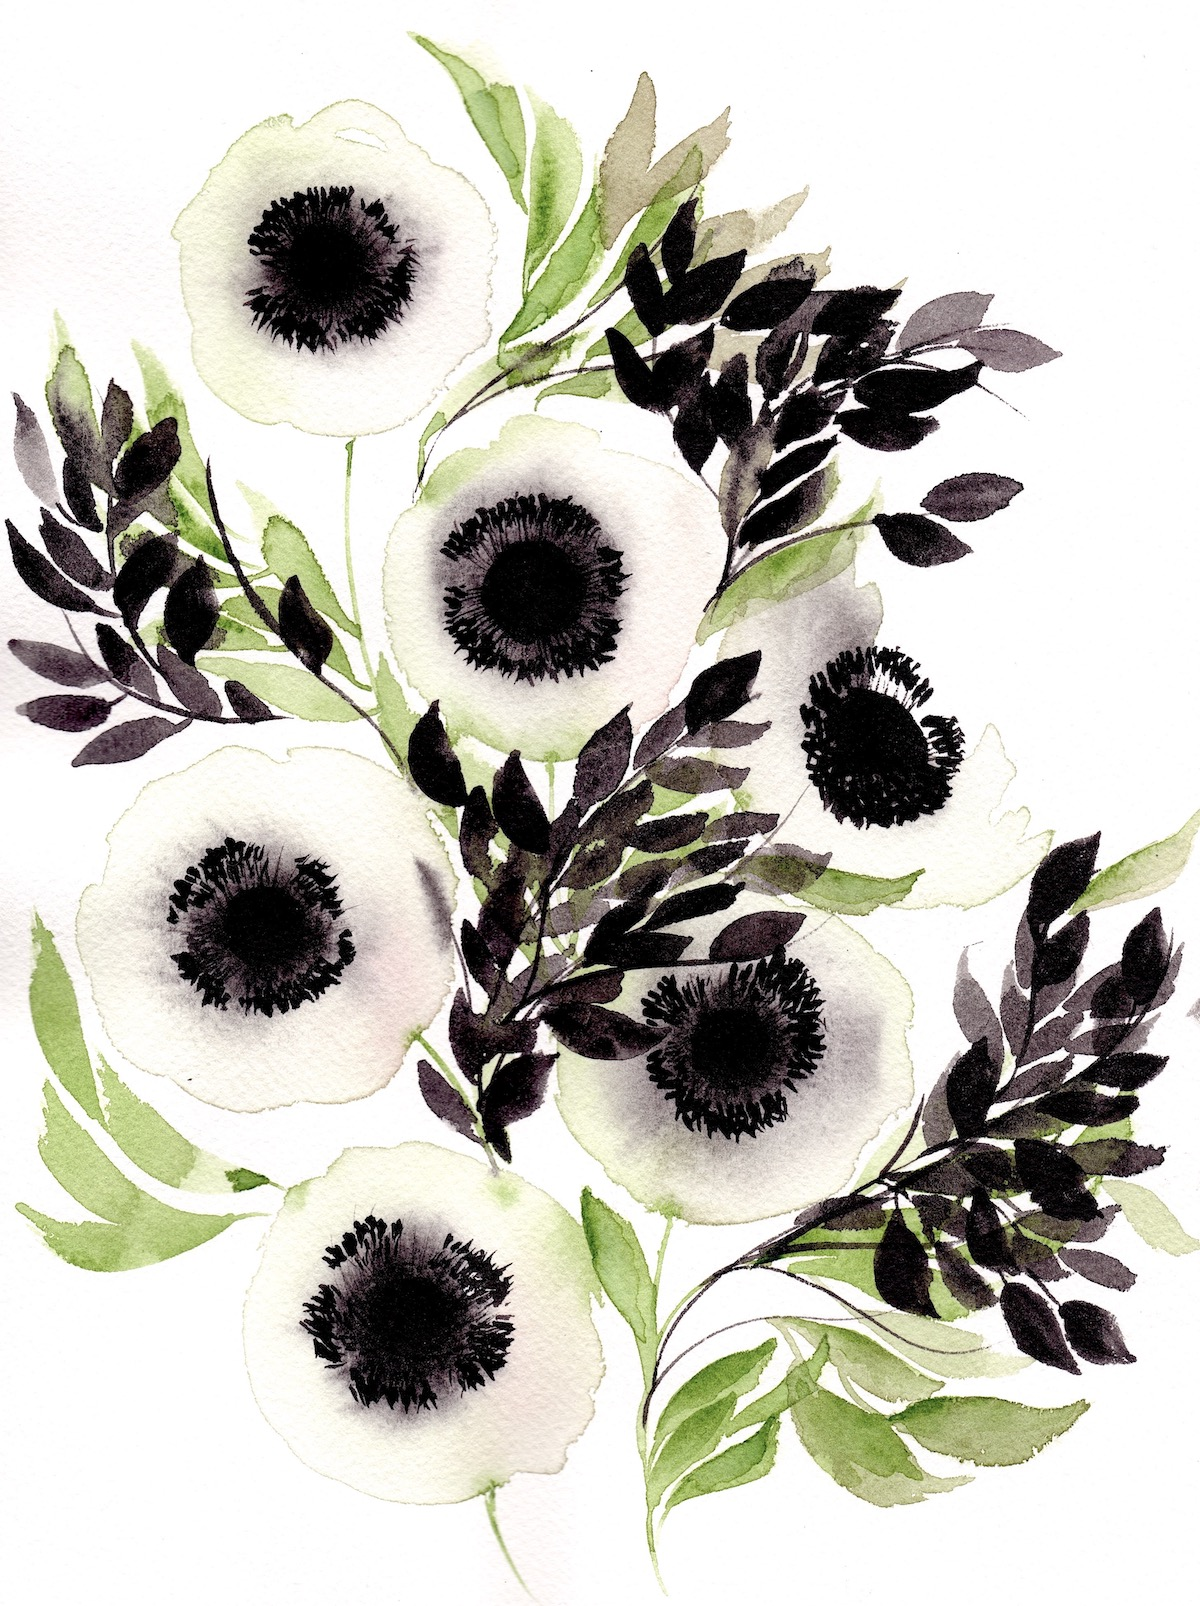 Abstract Floral illustrations with white anemones and black leaves